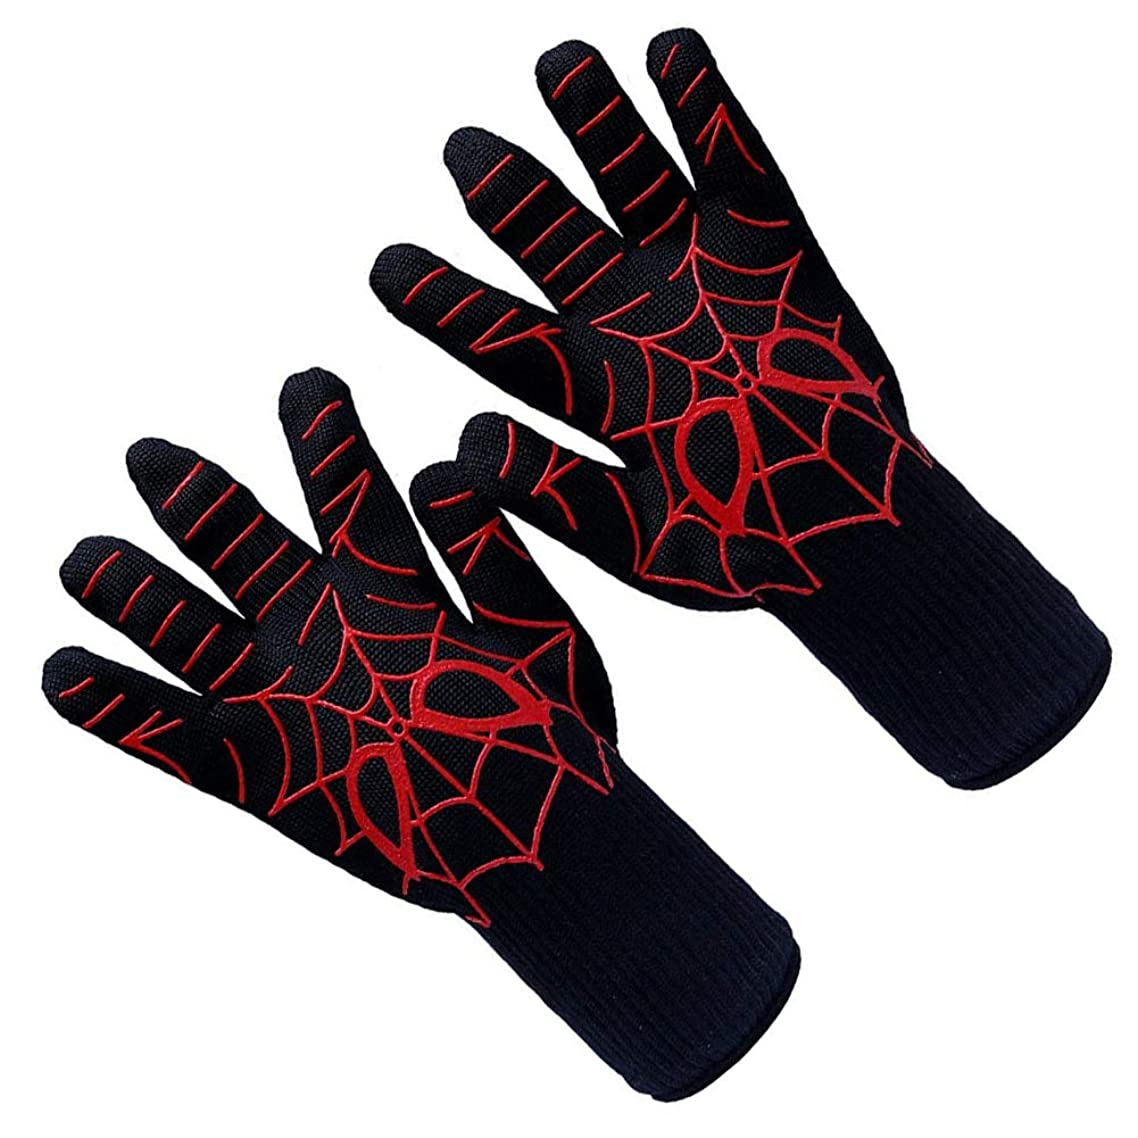 2Pcs Silicone Heat Resistant Grilling Glove Forearm Protection Insulated Oven Mitt for Oven Mitts, Pot Holders Grilling Red-Black